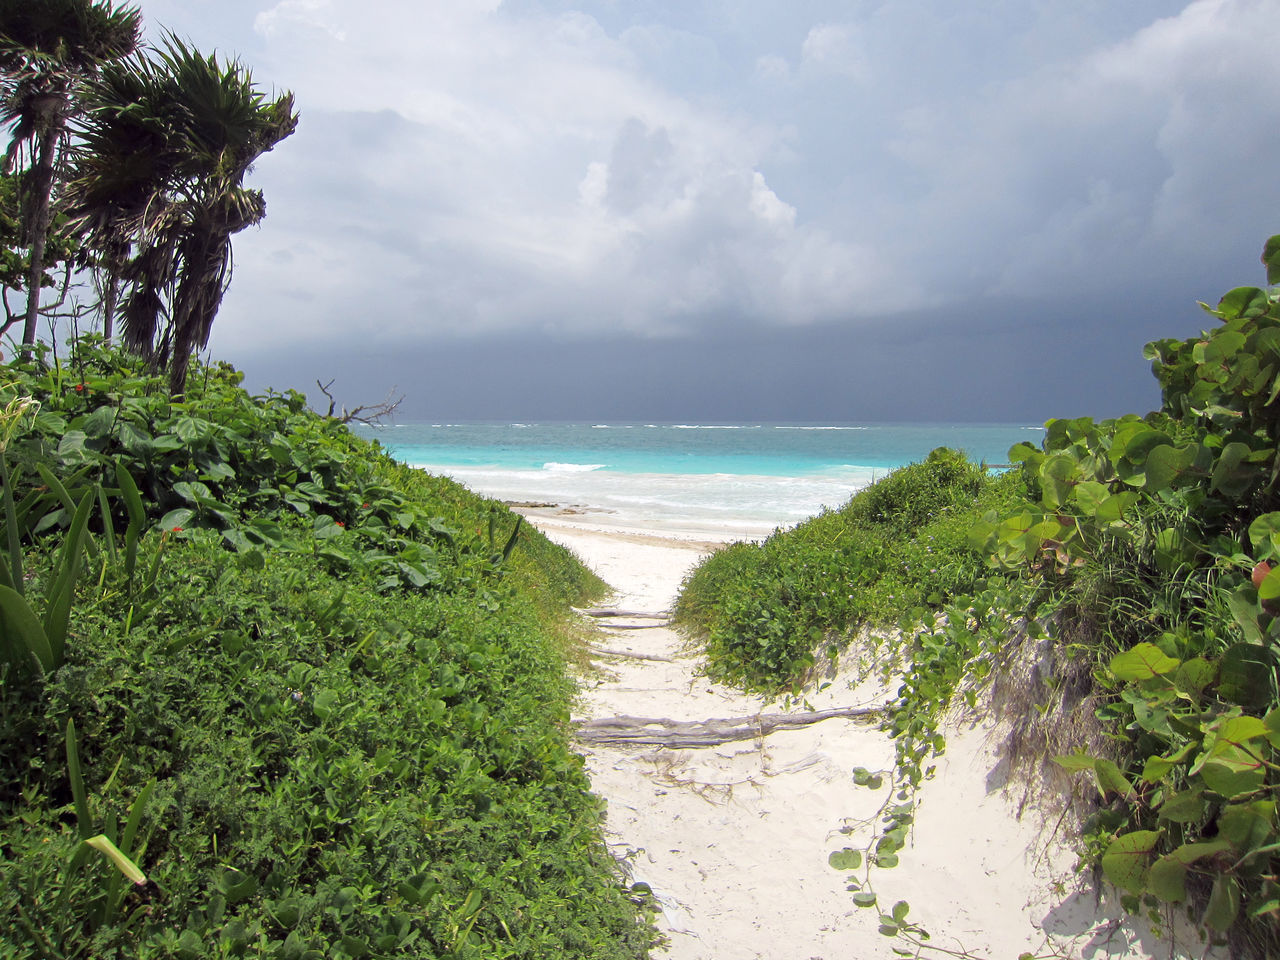 Carribean beach - Tulum - Quintana Roo - Mexico Beach Beauty In Nature Carribean Carribean Sea Cloud - Sky Coastline Horizon Over Water Nature Outdoors Palm Tree Sand Scenics Sea Stormy Sky Vacations Water Wave